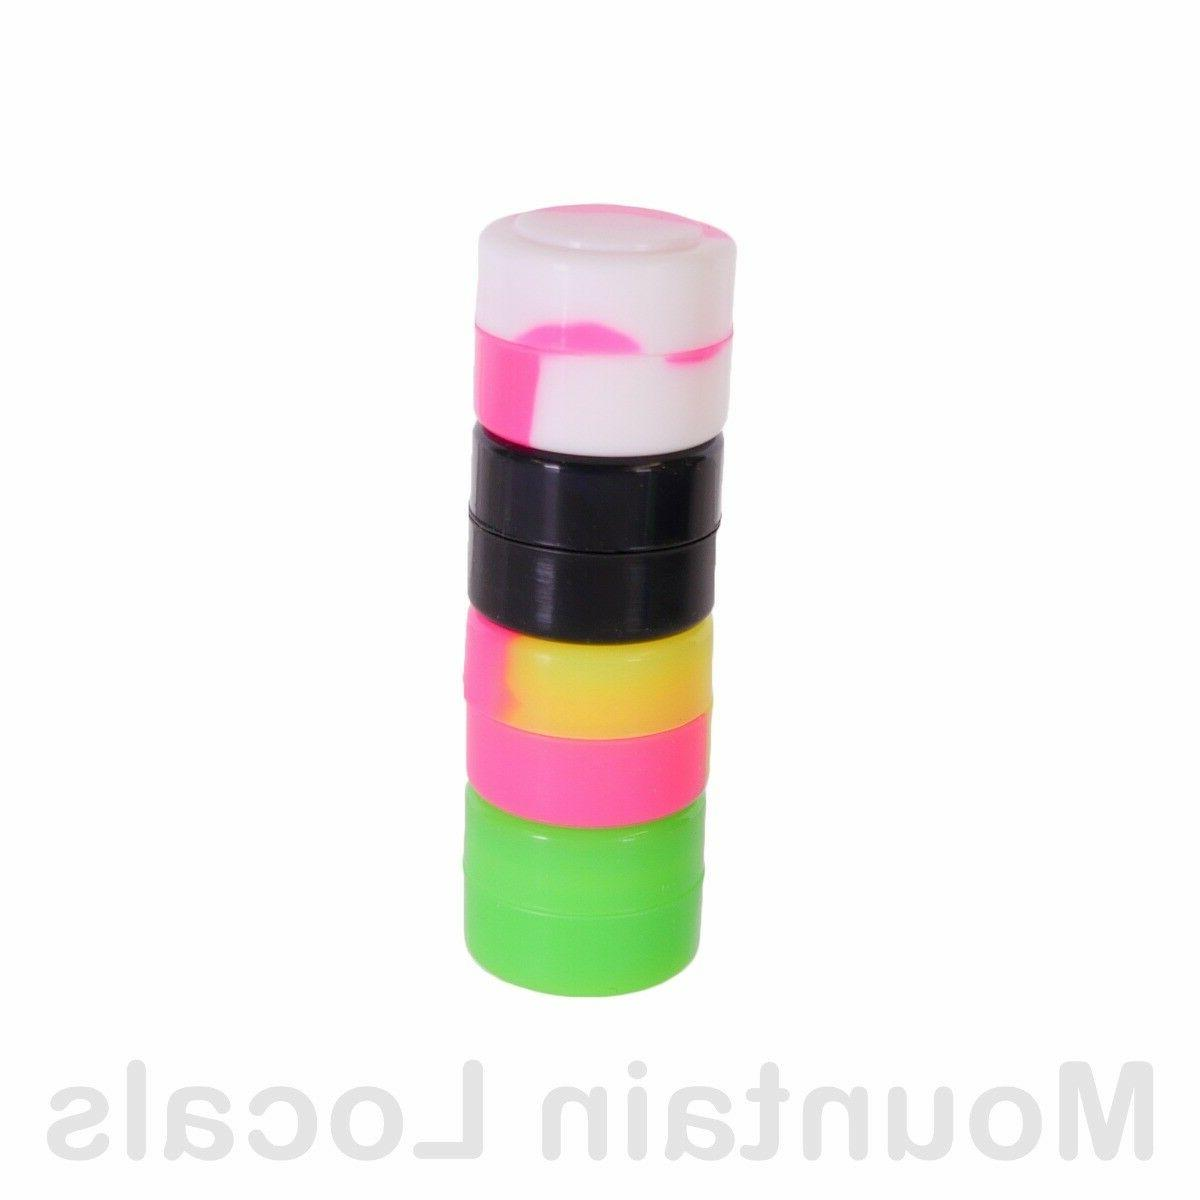 10 Pack 2ml Silicone Containers 2 ml Mixed Colors Nonstick Jars Lot